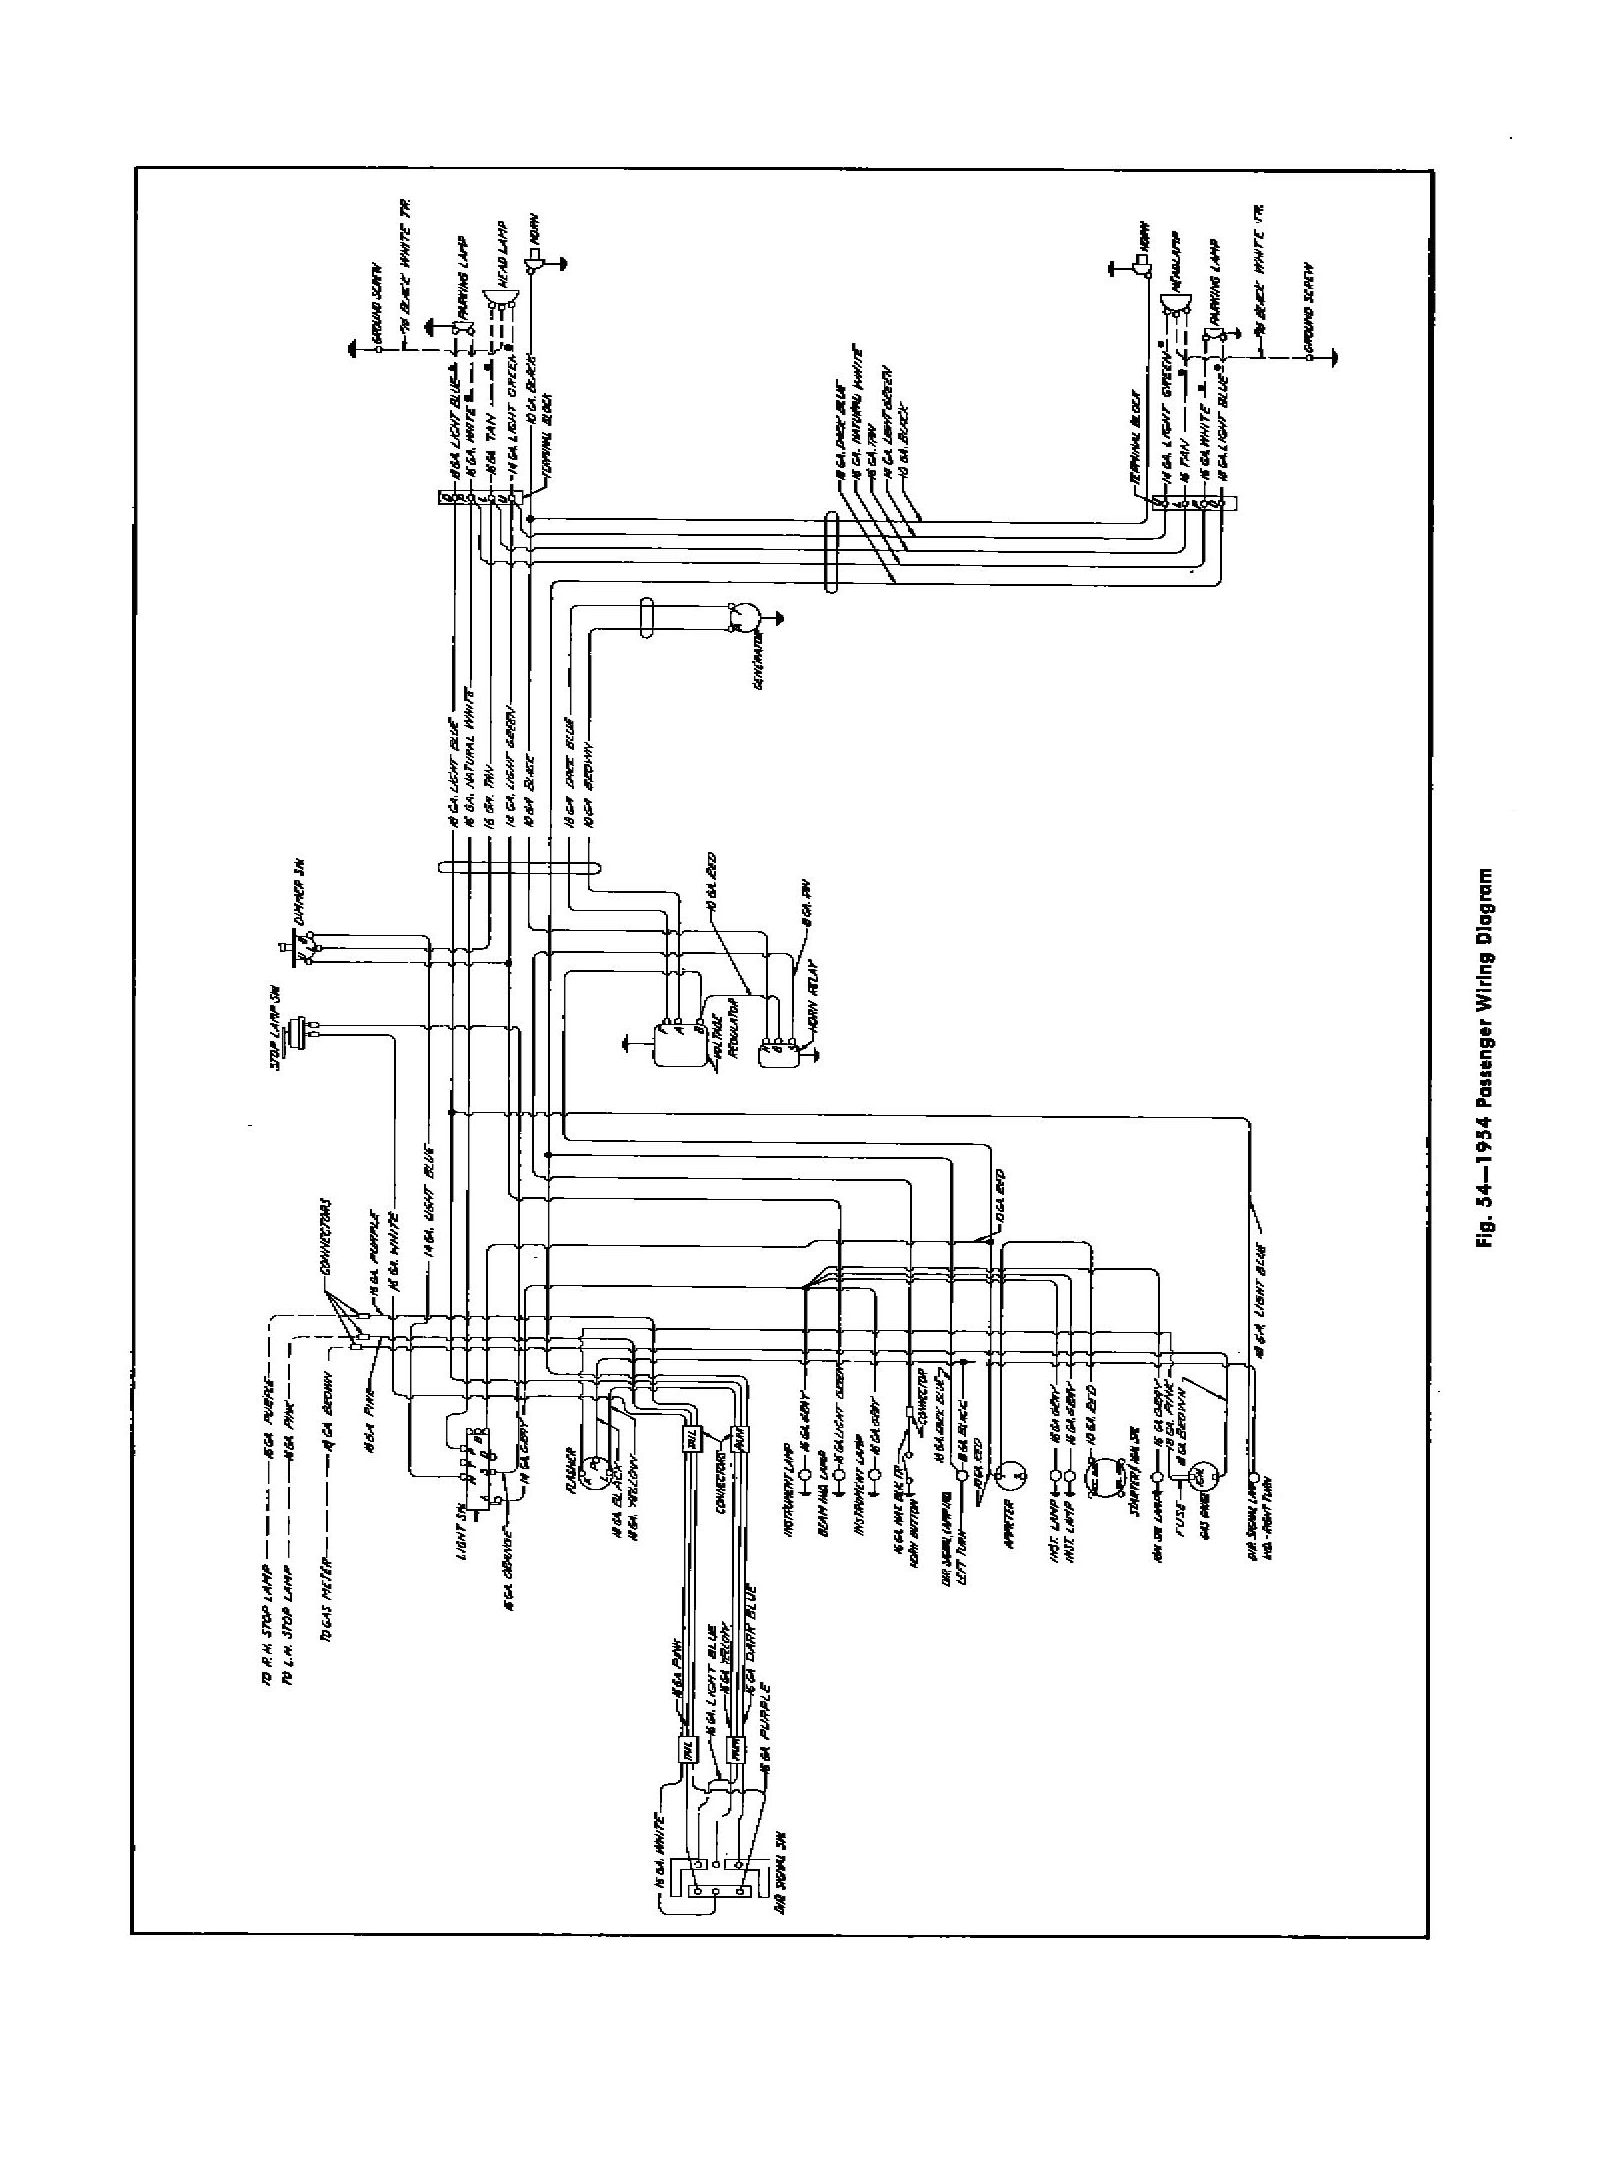 hight resolution of wiring diagram for rear view mirror ford mustang rear view